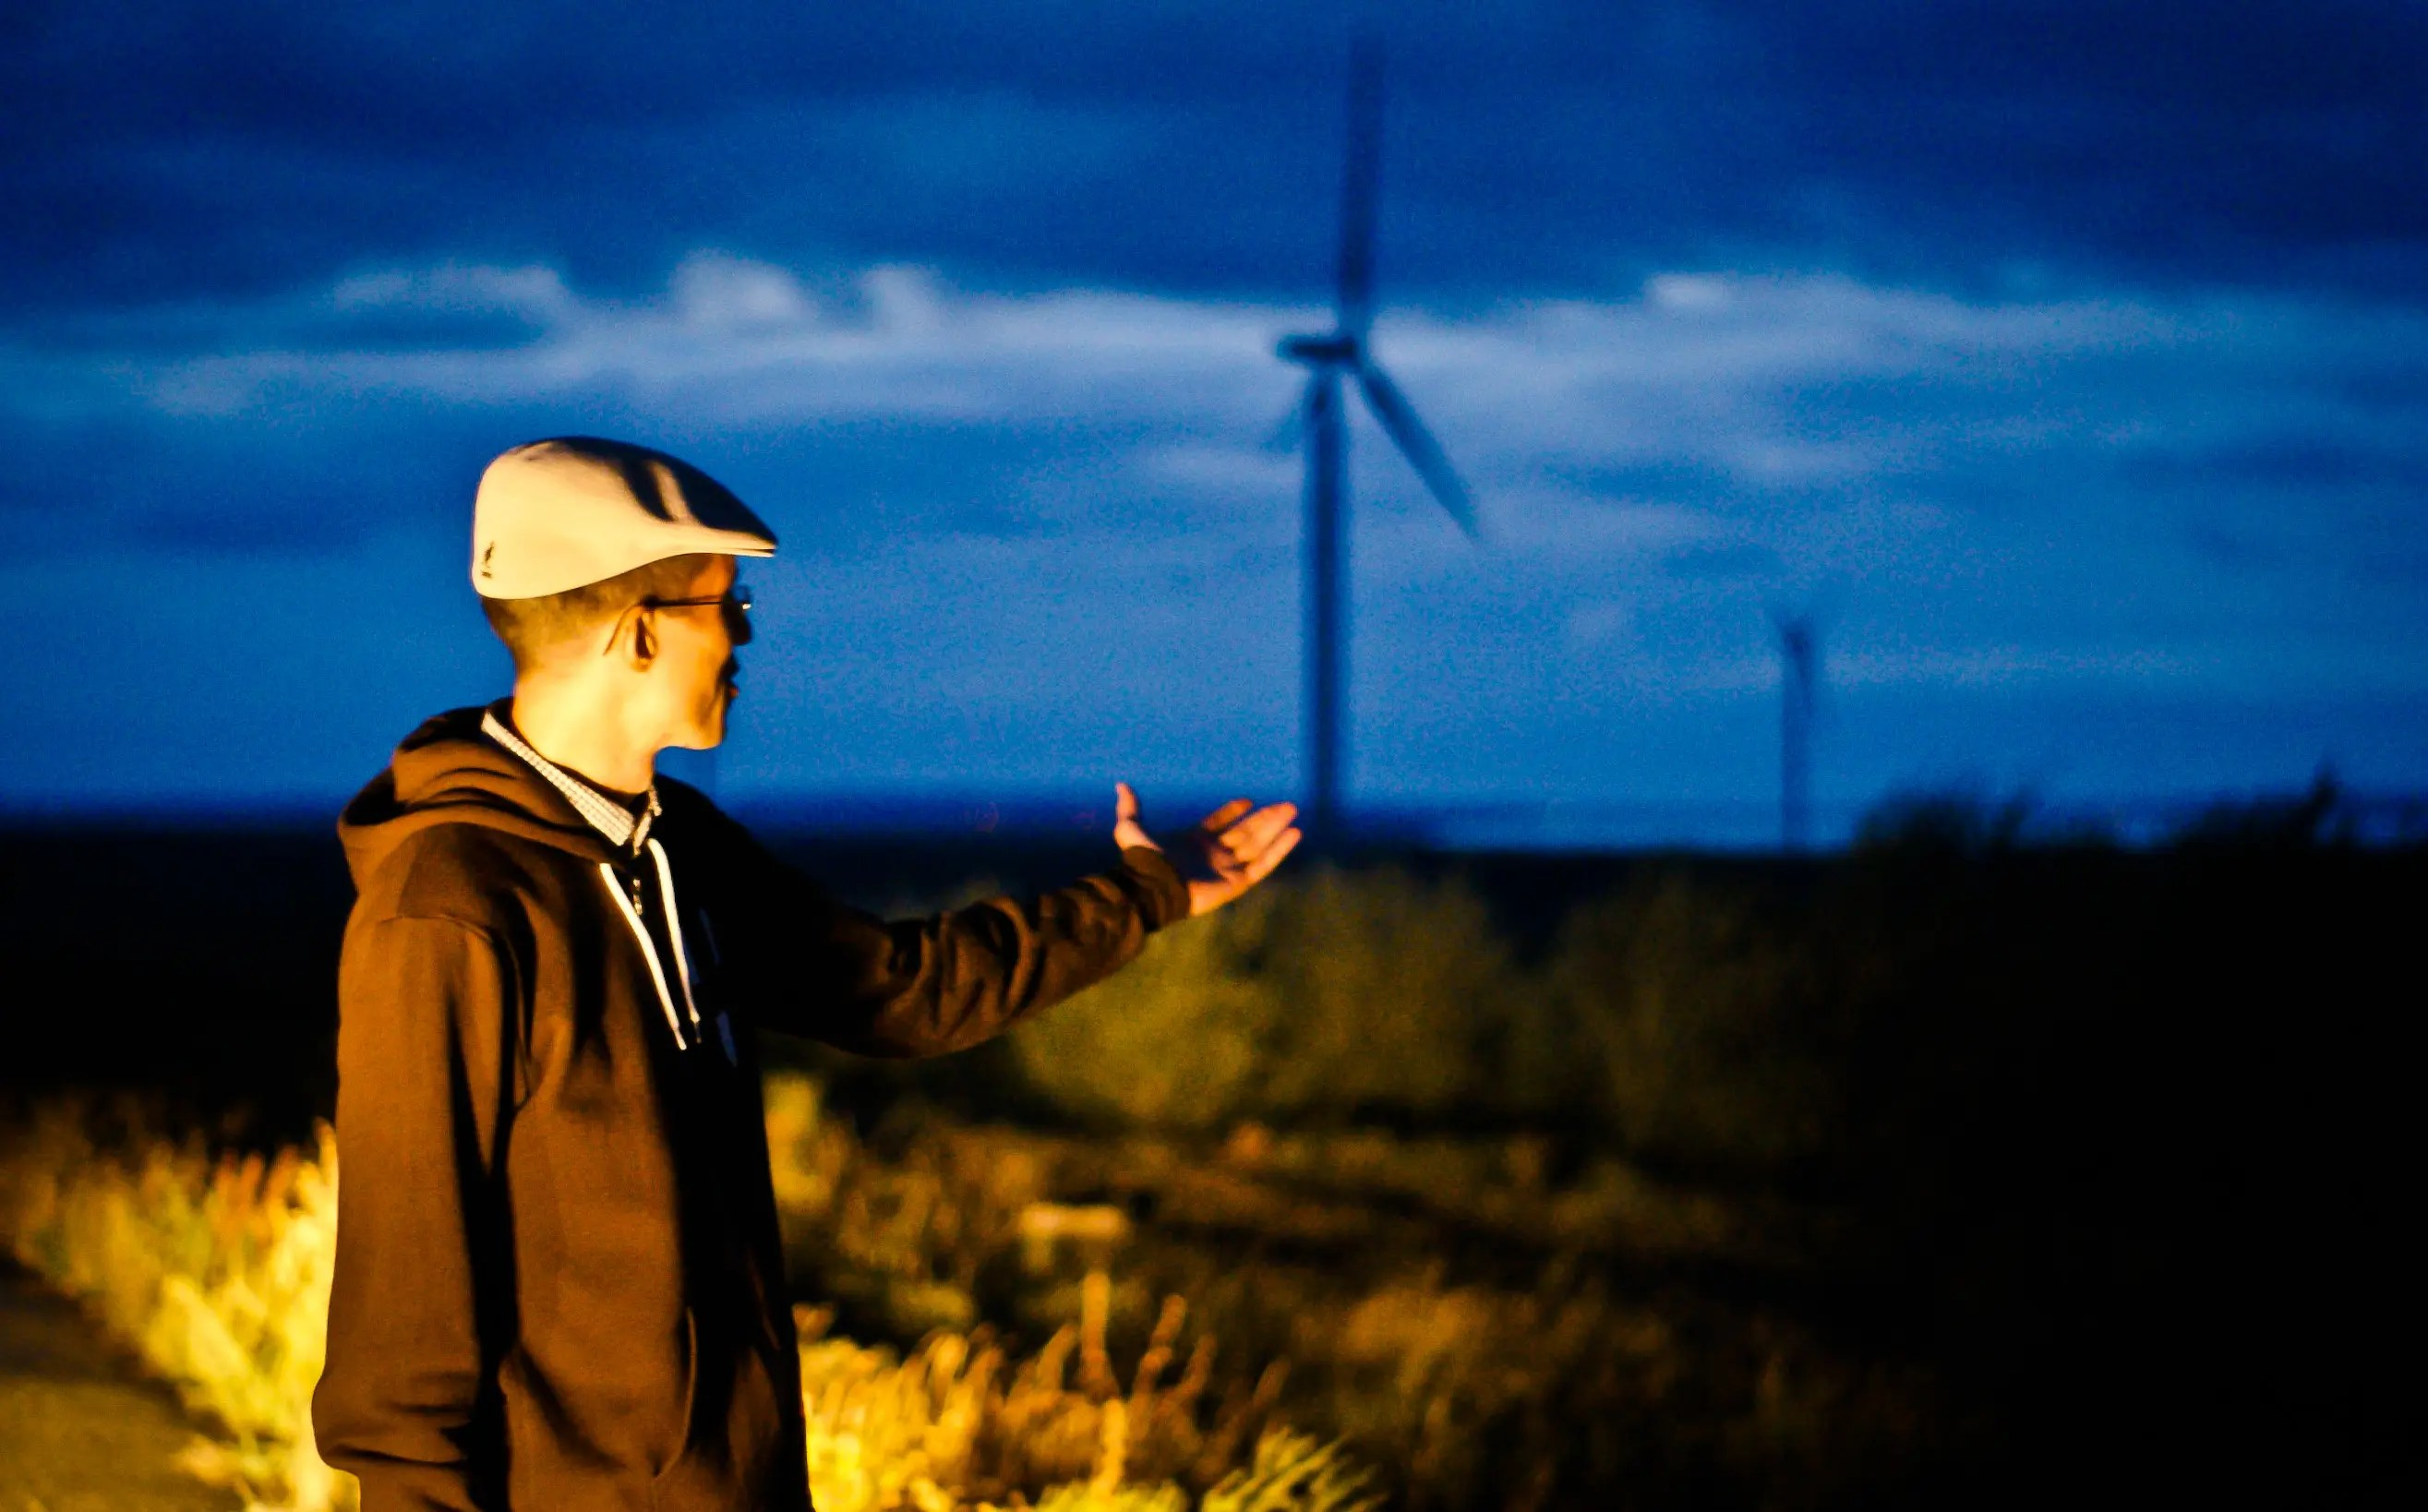 Zachary Shahan at a wind farm. Credit: Mariia Khandus / Zachary Shahan